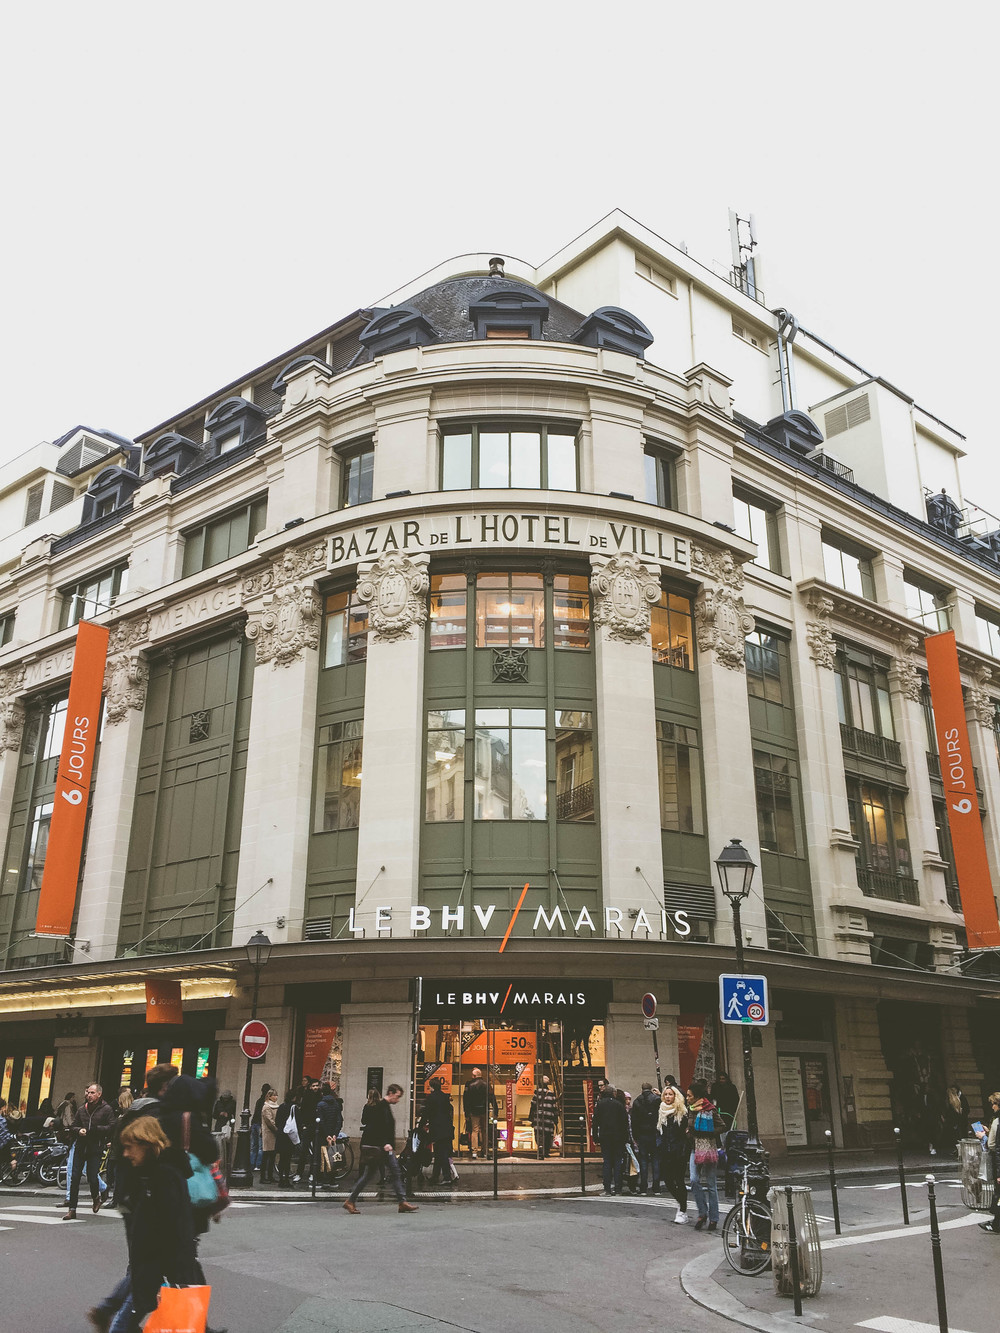 Le BHV: a giant department store with every department you can imagine.